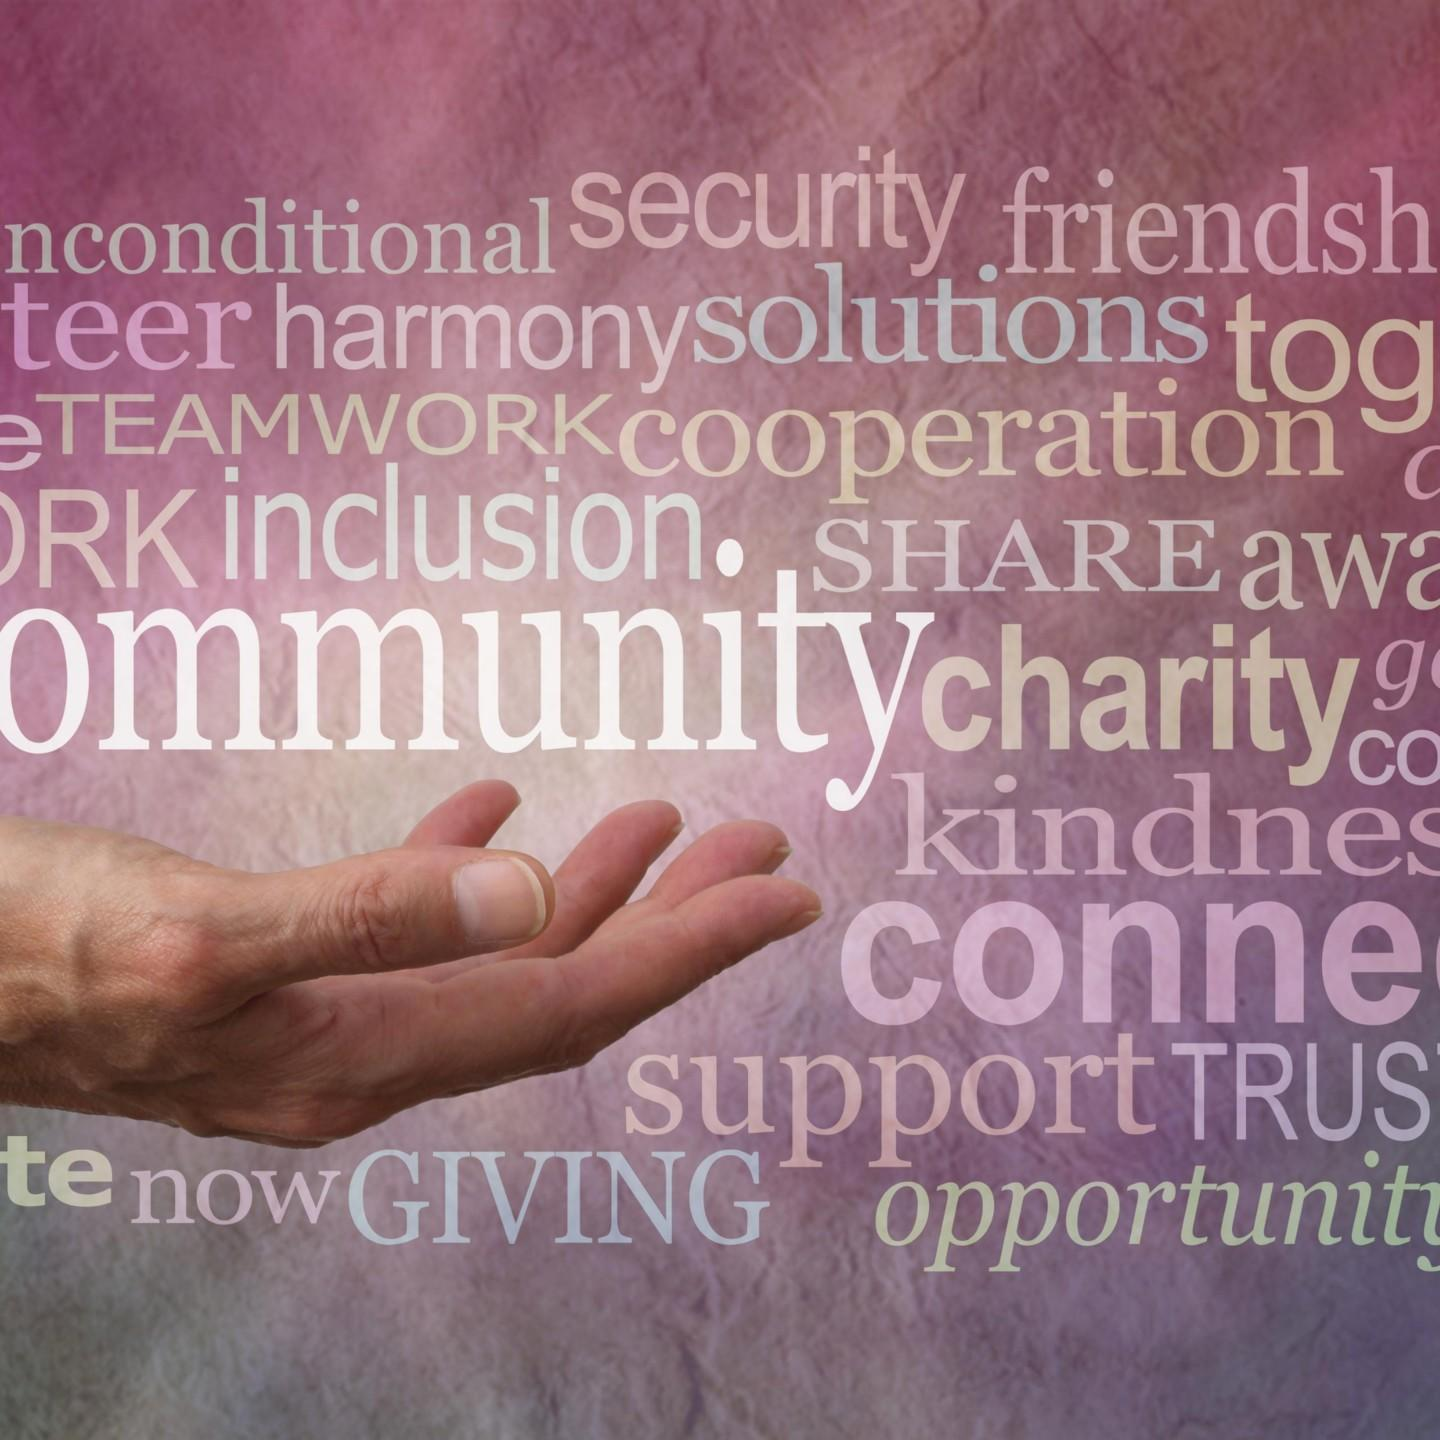 Community & Practitioner Support